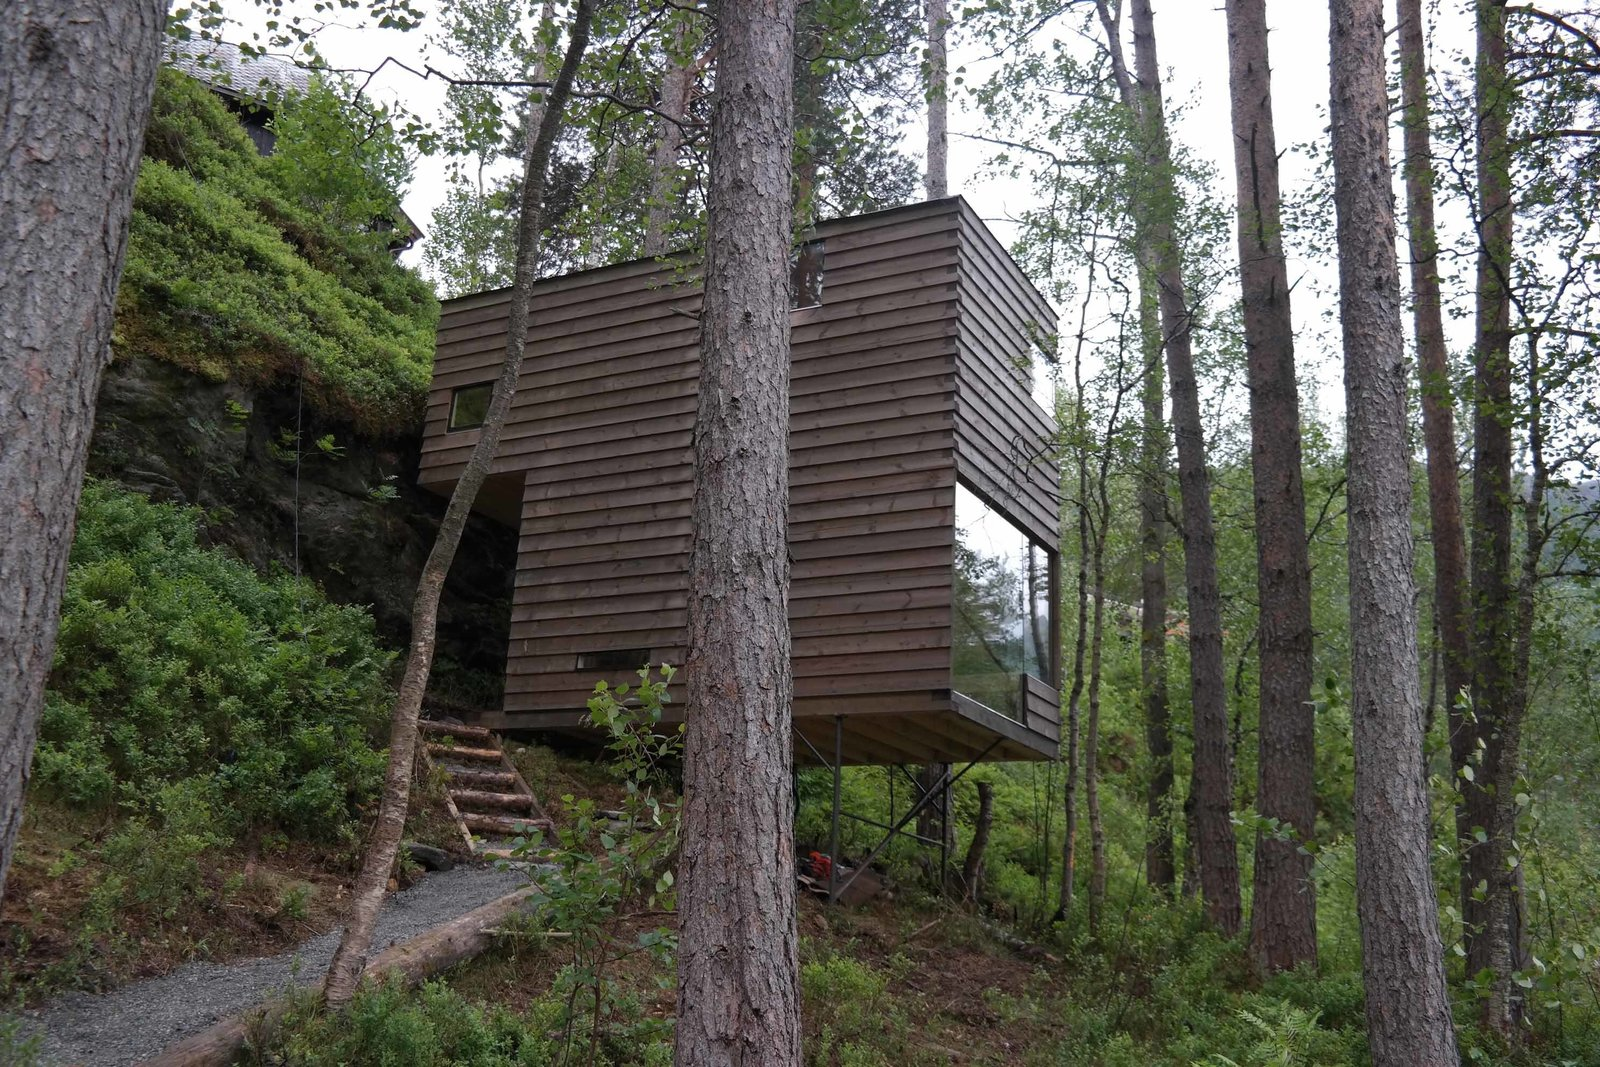 The two new cabins, also by Jensen & Skodvin Architects, are built on a steep hillside. They are held aloft by narrow steel rods and clad in a lumber stained to blend into the natural surroundings.